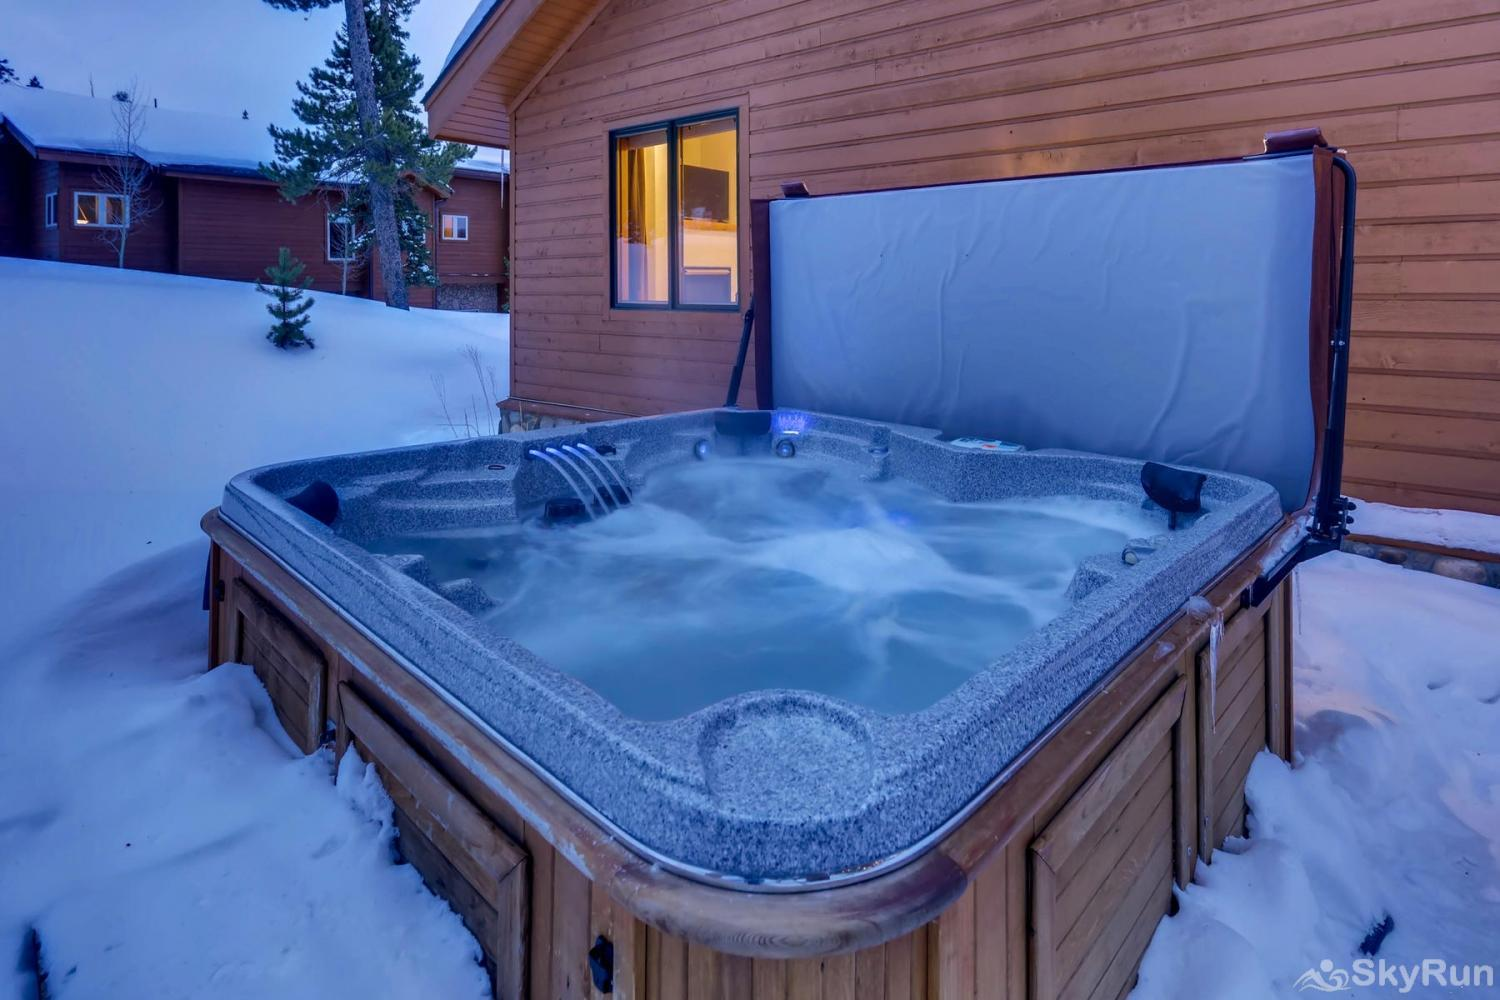 Nangle Woods Retreat Relax in your private outdoor hot tub!